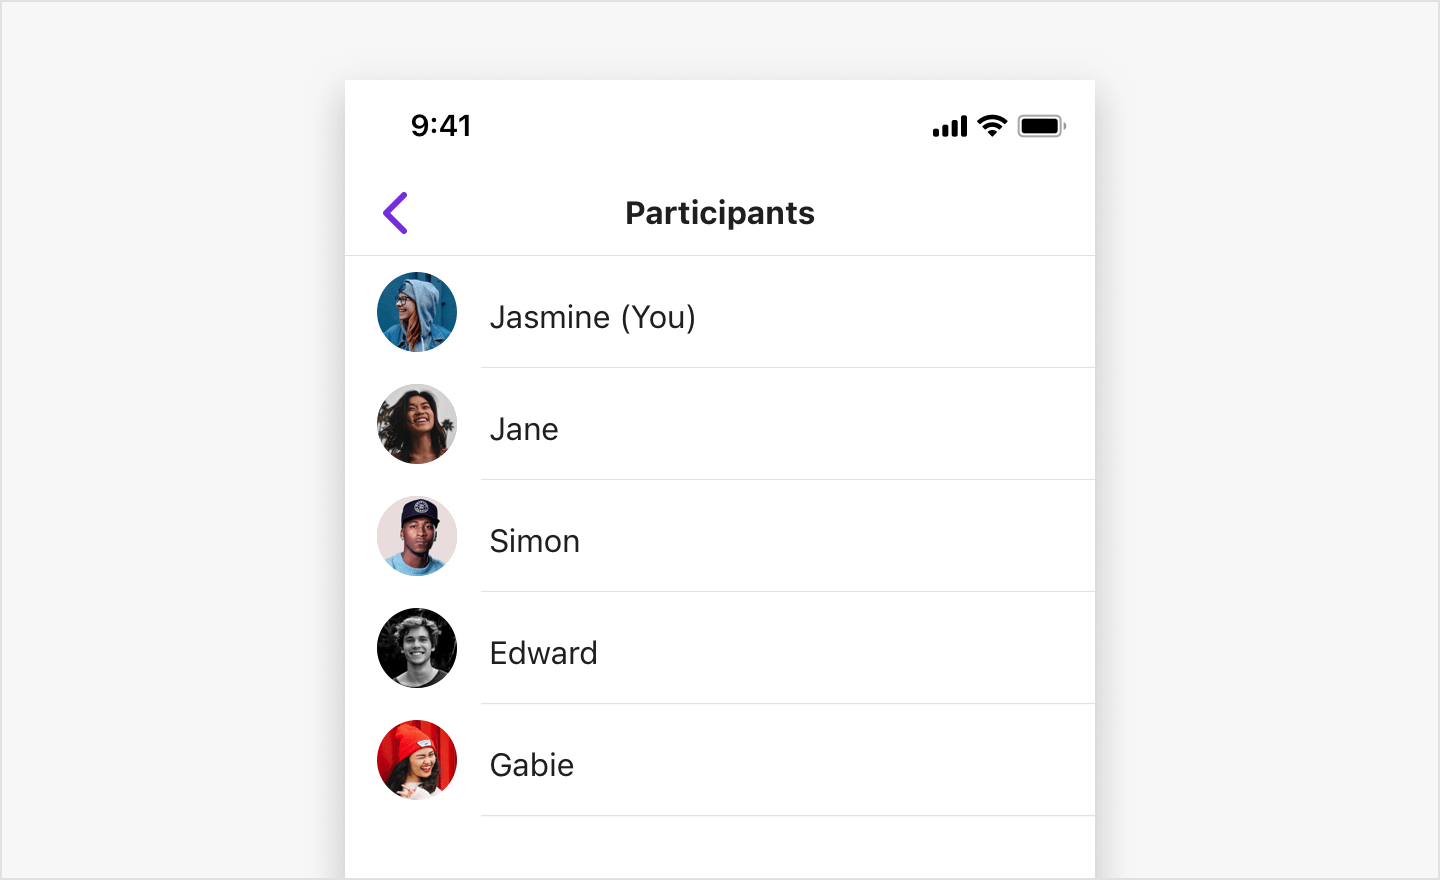 Image|SBUMemberListViewController shows a list of participants.